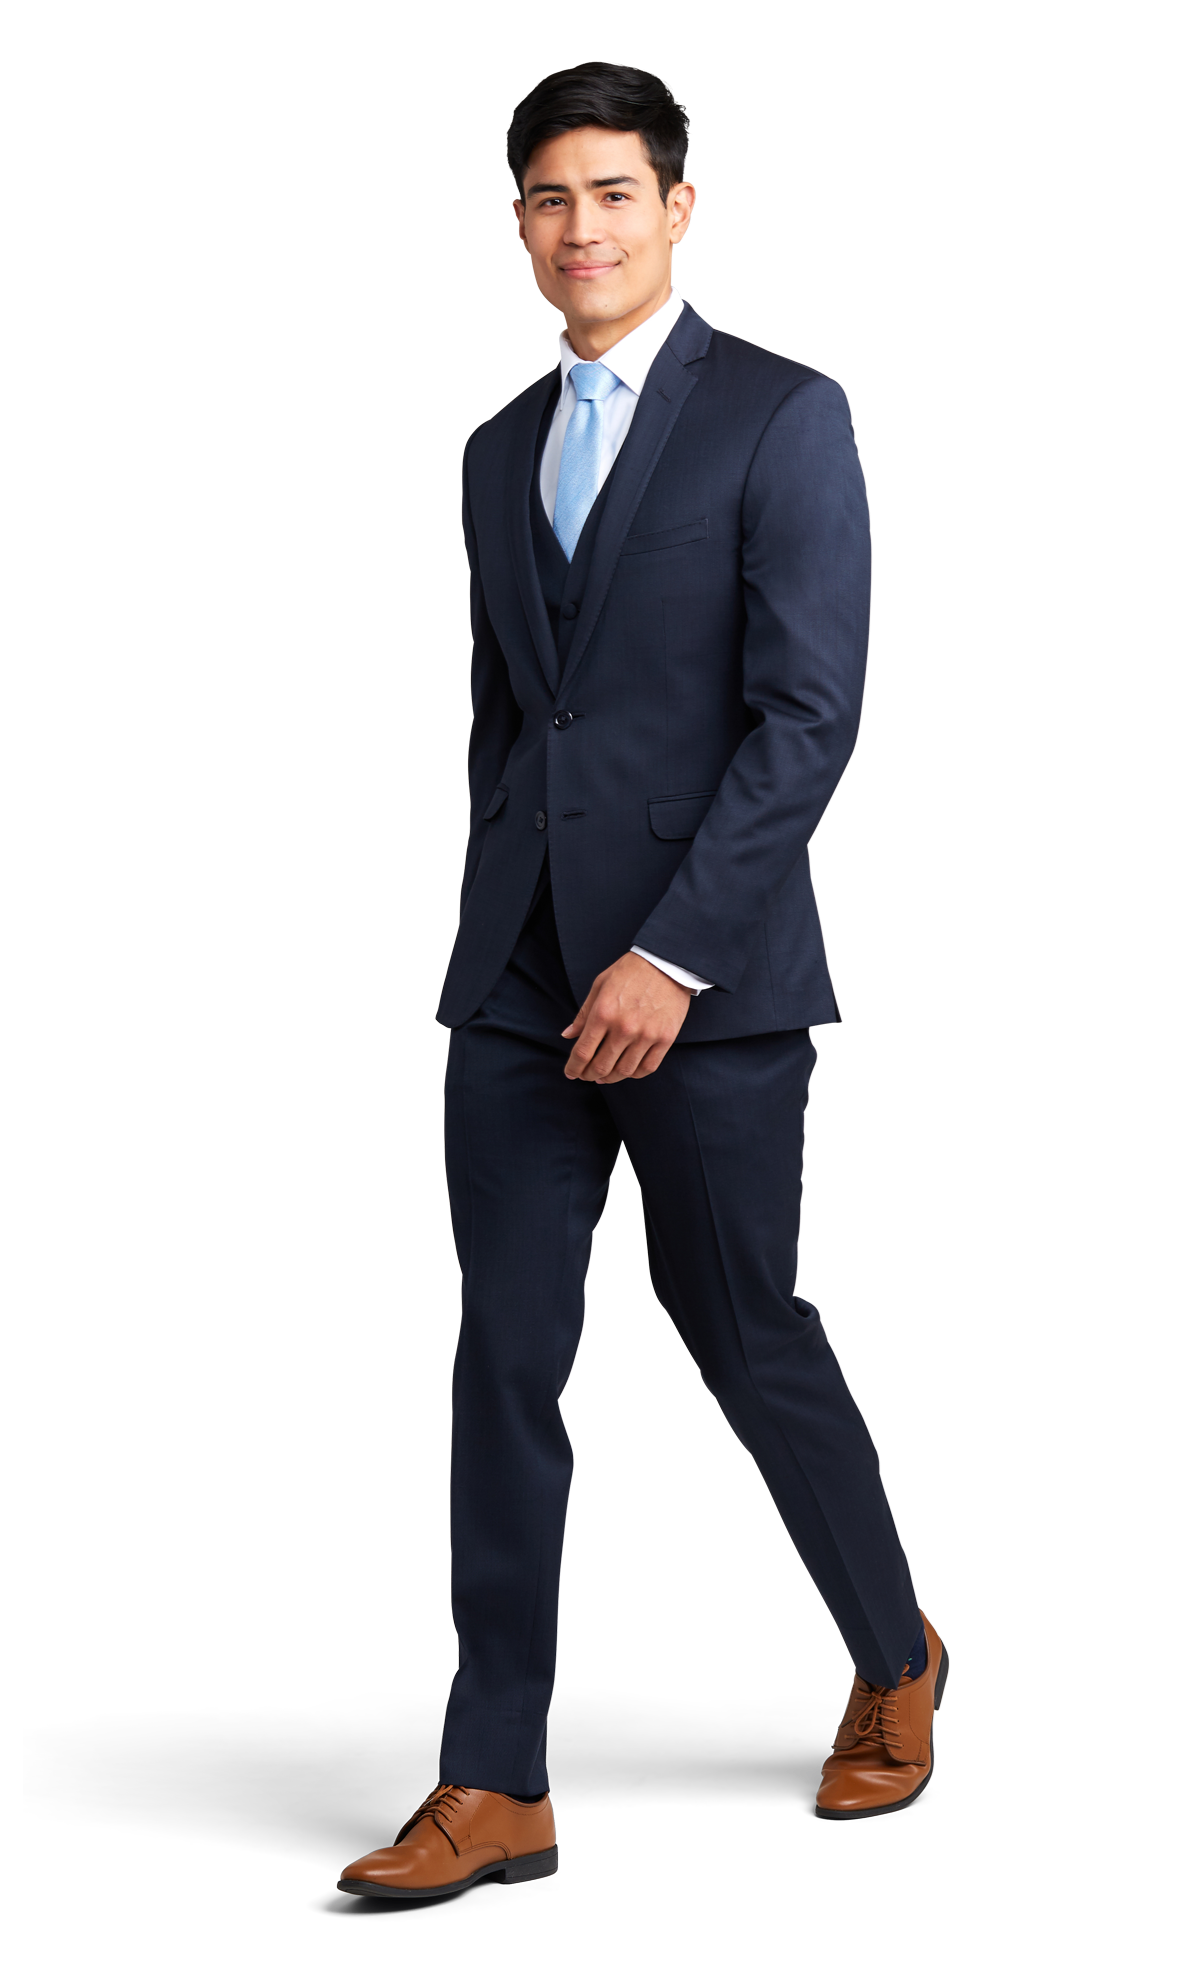 Navy Blue Notch Lapel Suit Online Rental 3